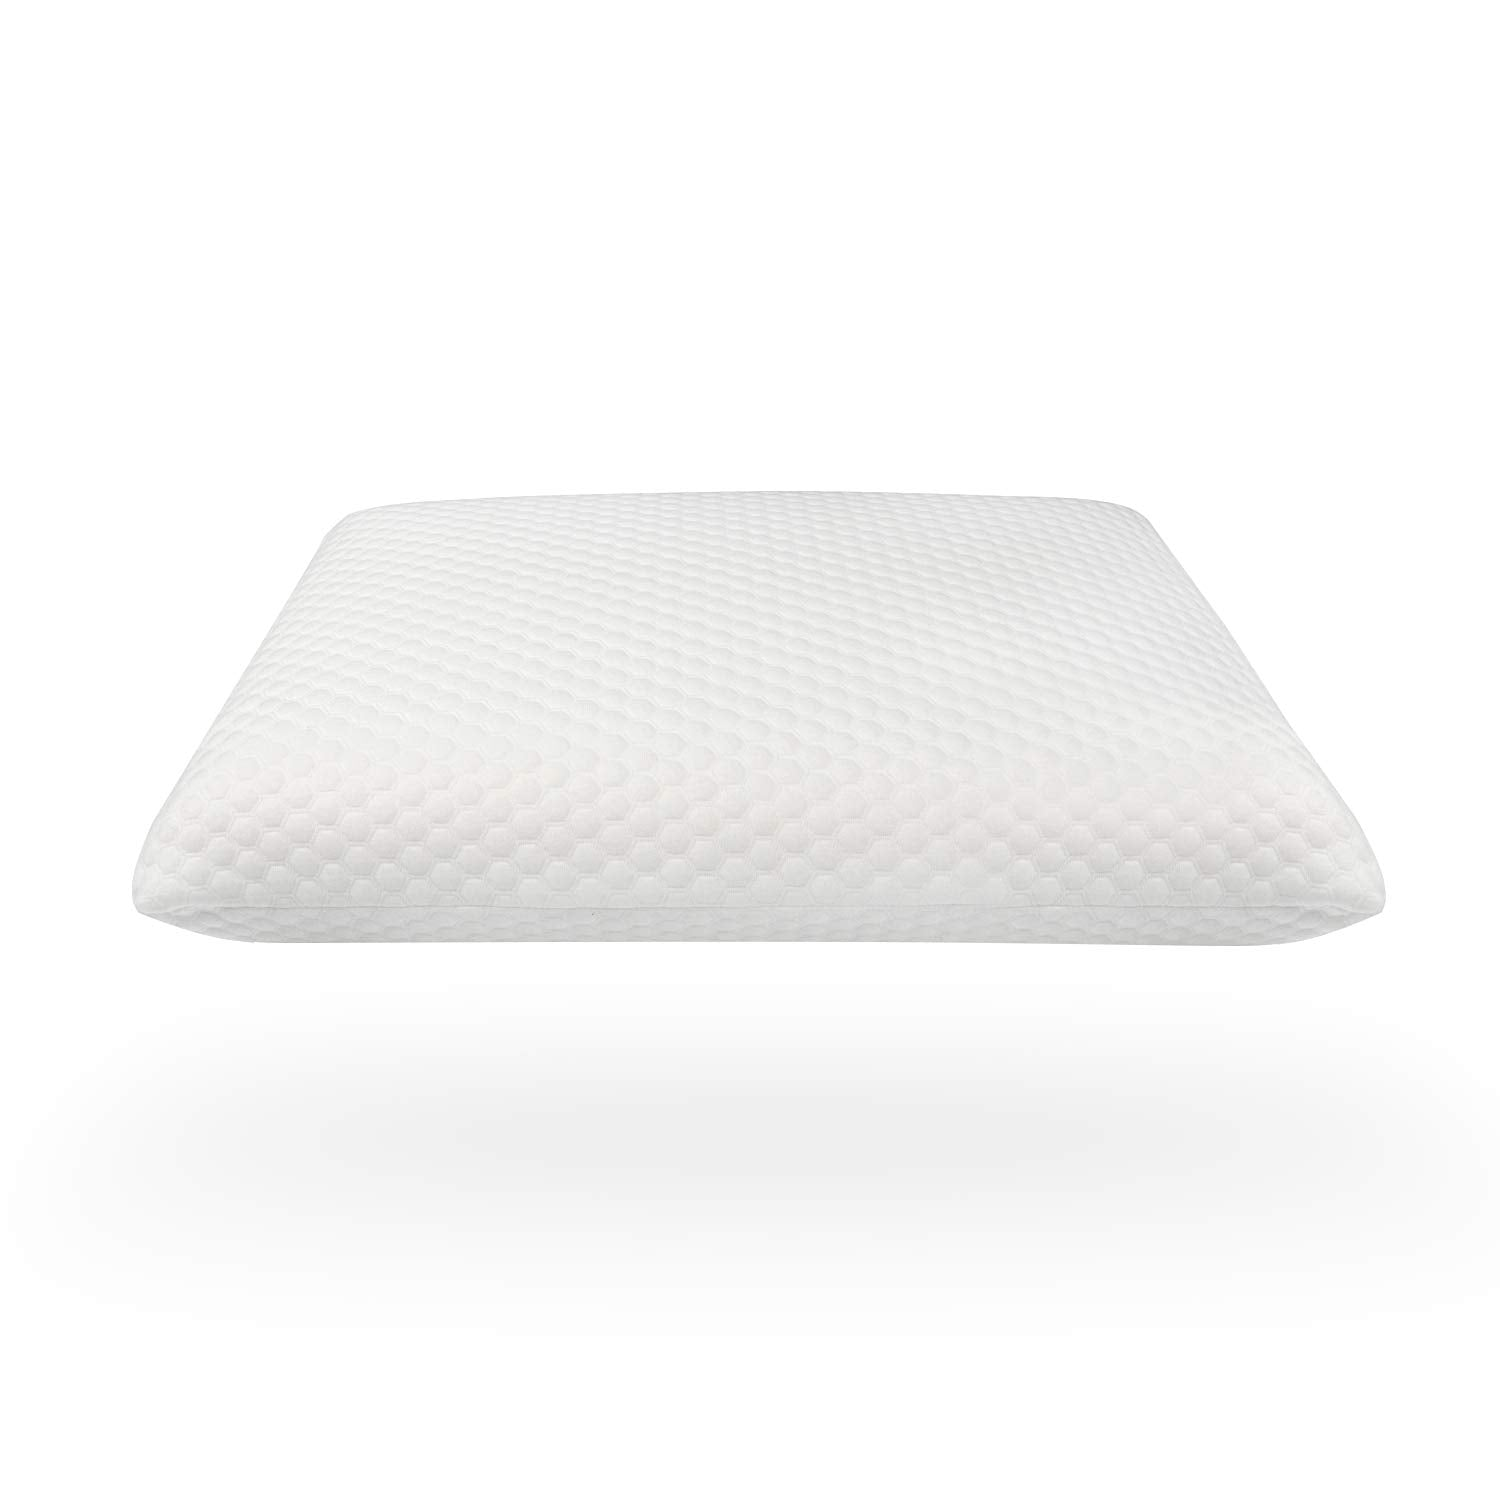 ROSENRIPS cooling gel & memory foam pillow